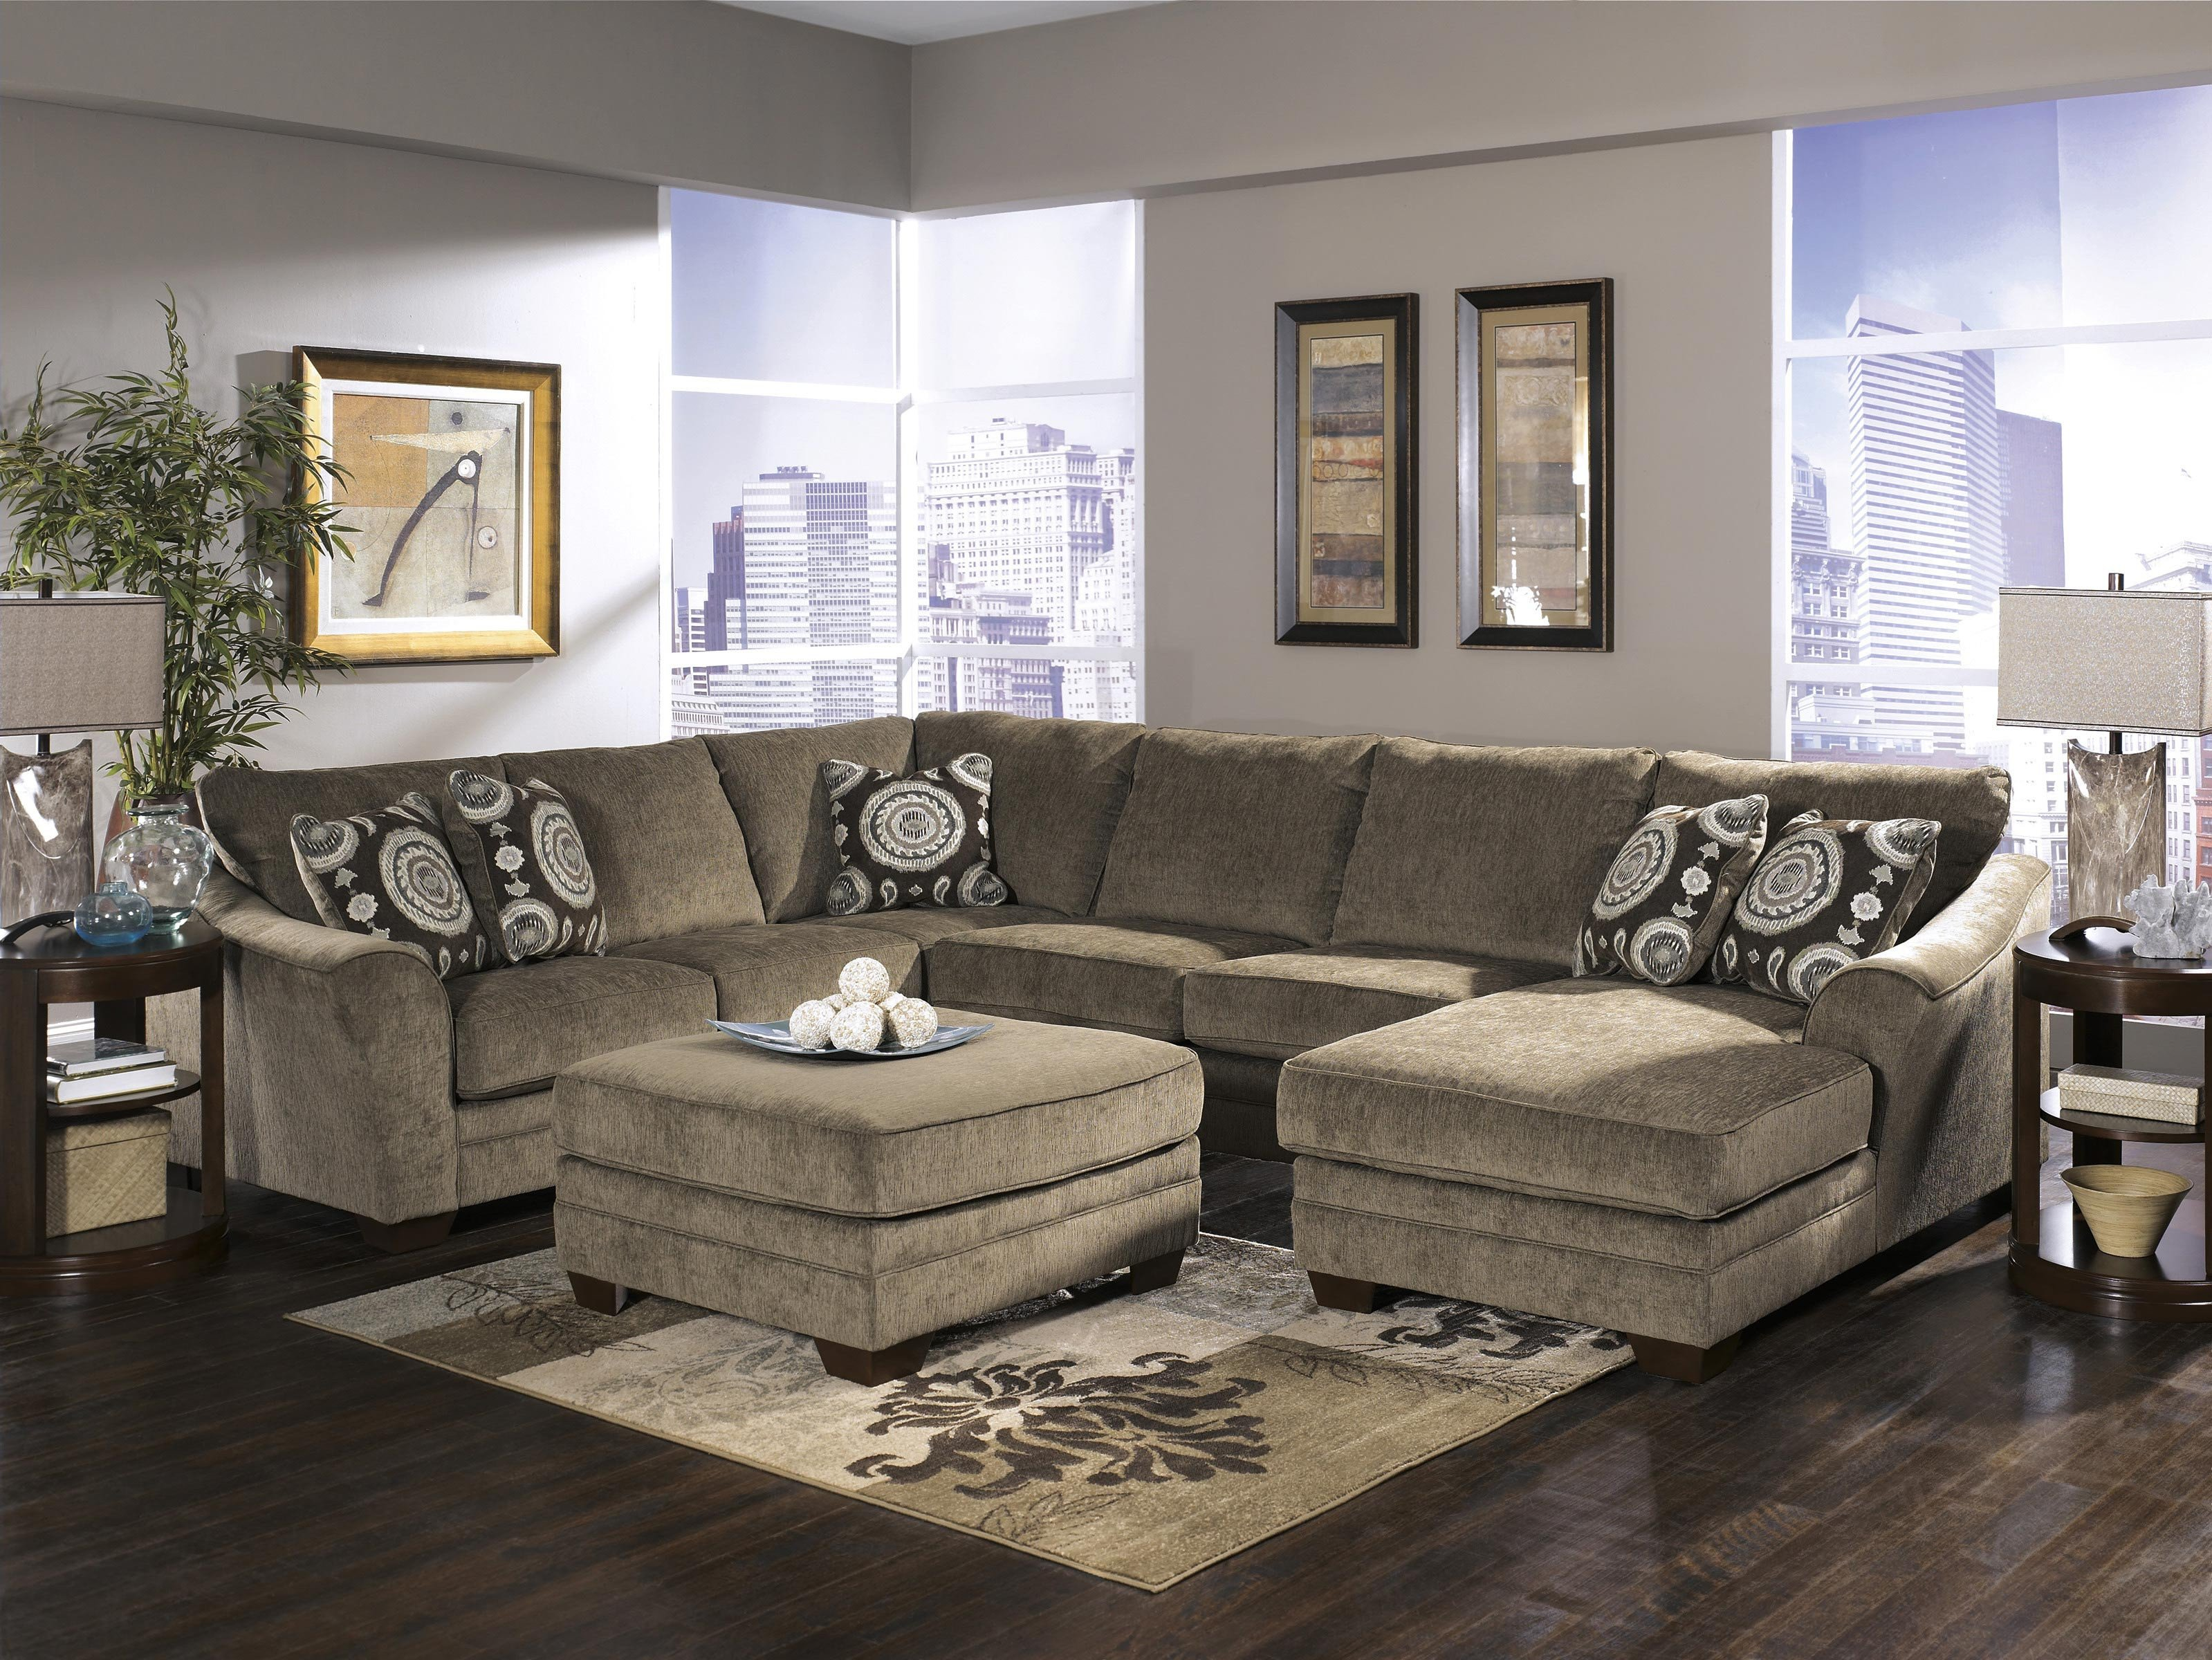 Small Living Room Ideaswith Sectionals Fresh Living Room Ideas with Sectionals sofa for Small Living Room